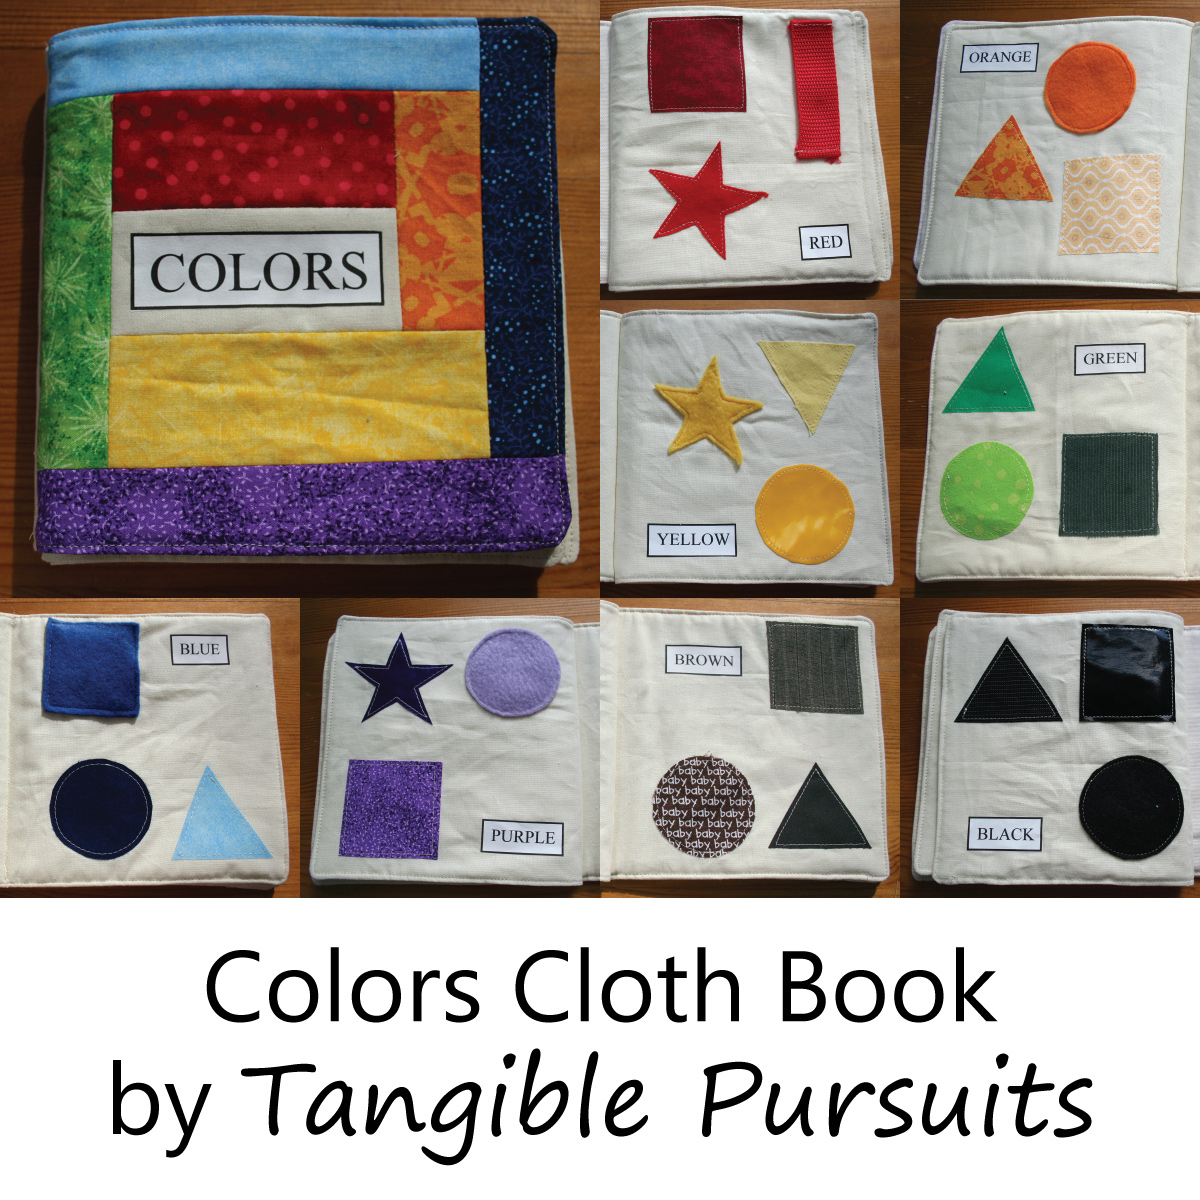 Colors Cloth Book by Tangible Pursuits